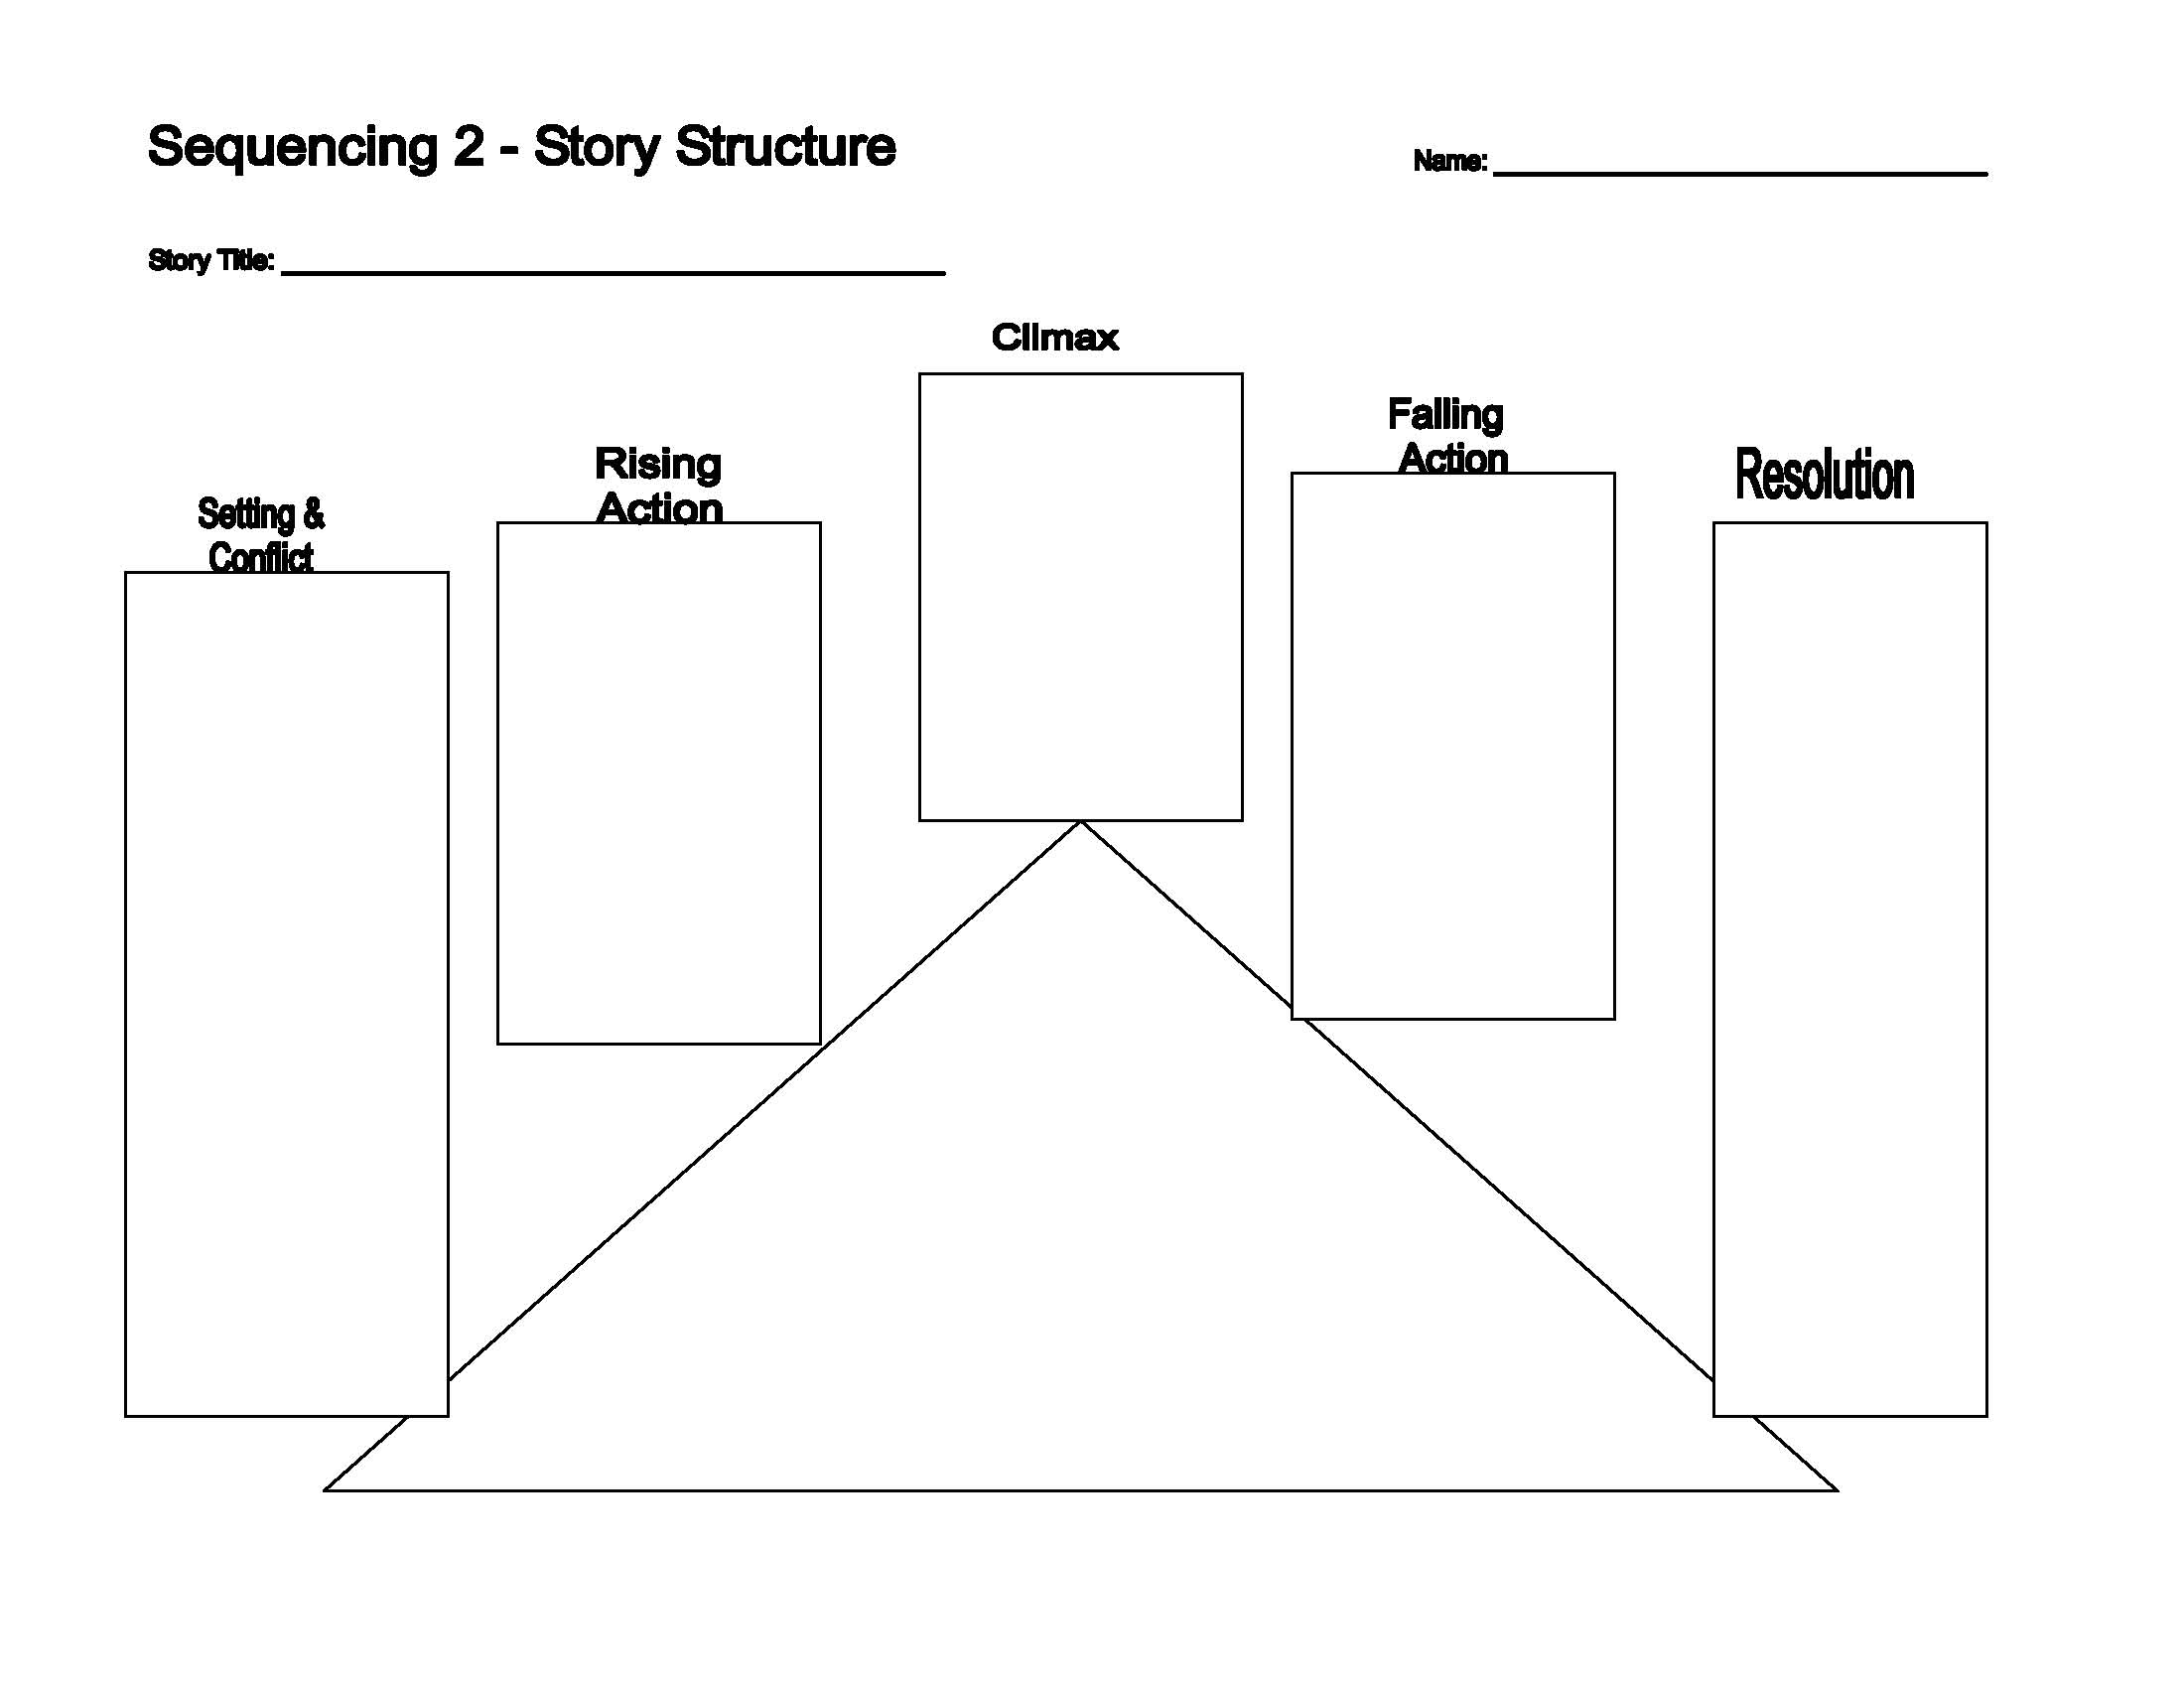 This is a preview image of Story Structure Graphic Organizer 2. Click on it to enlarge it or view the source file.